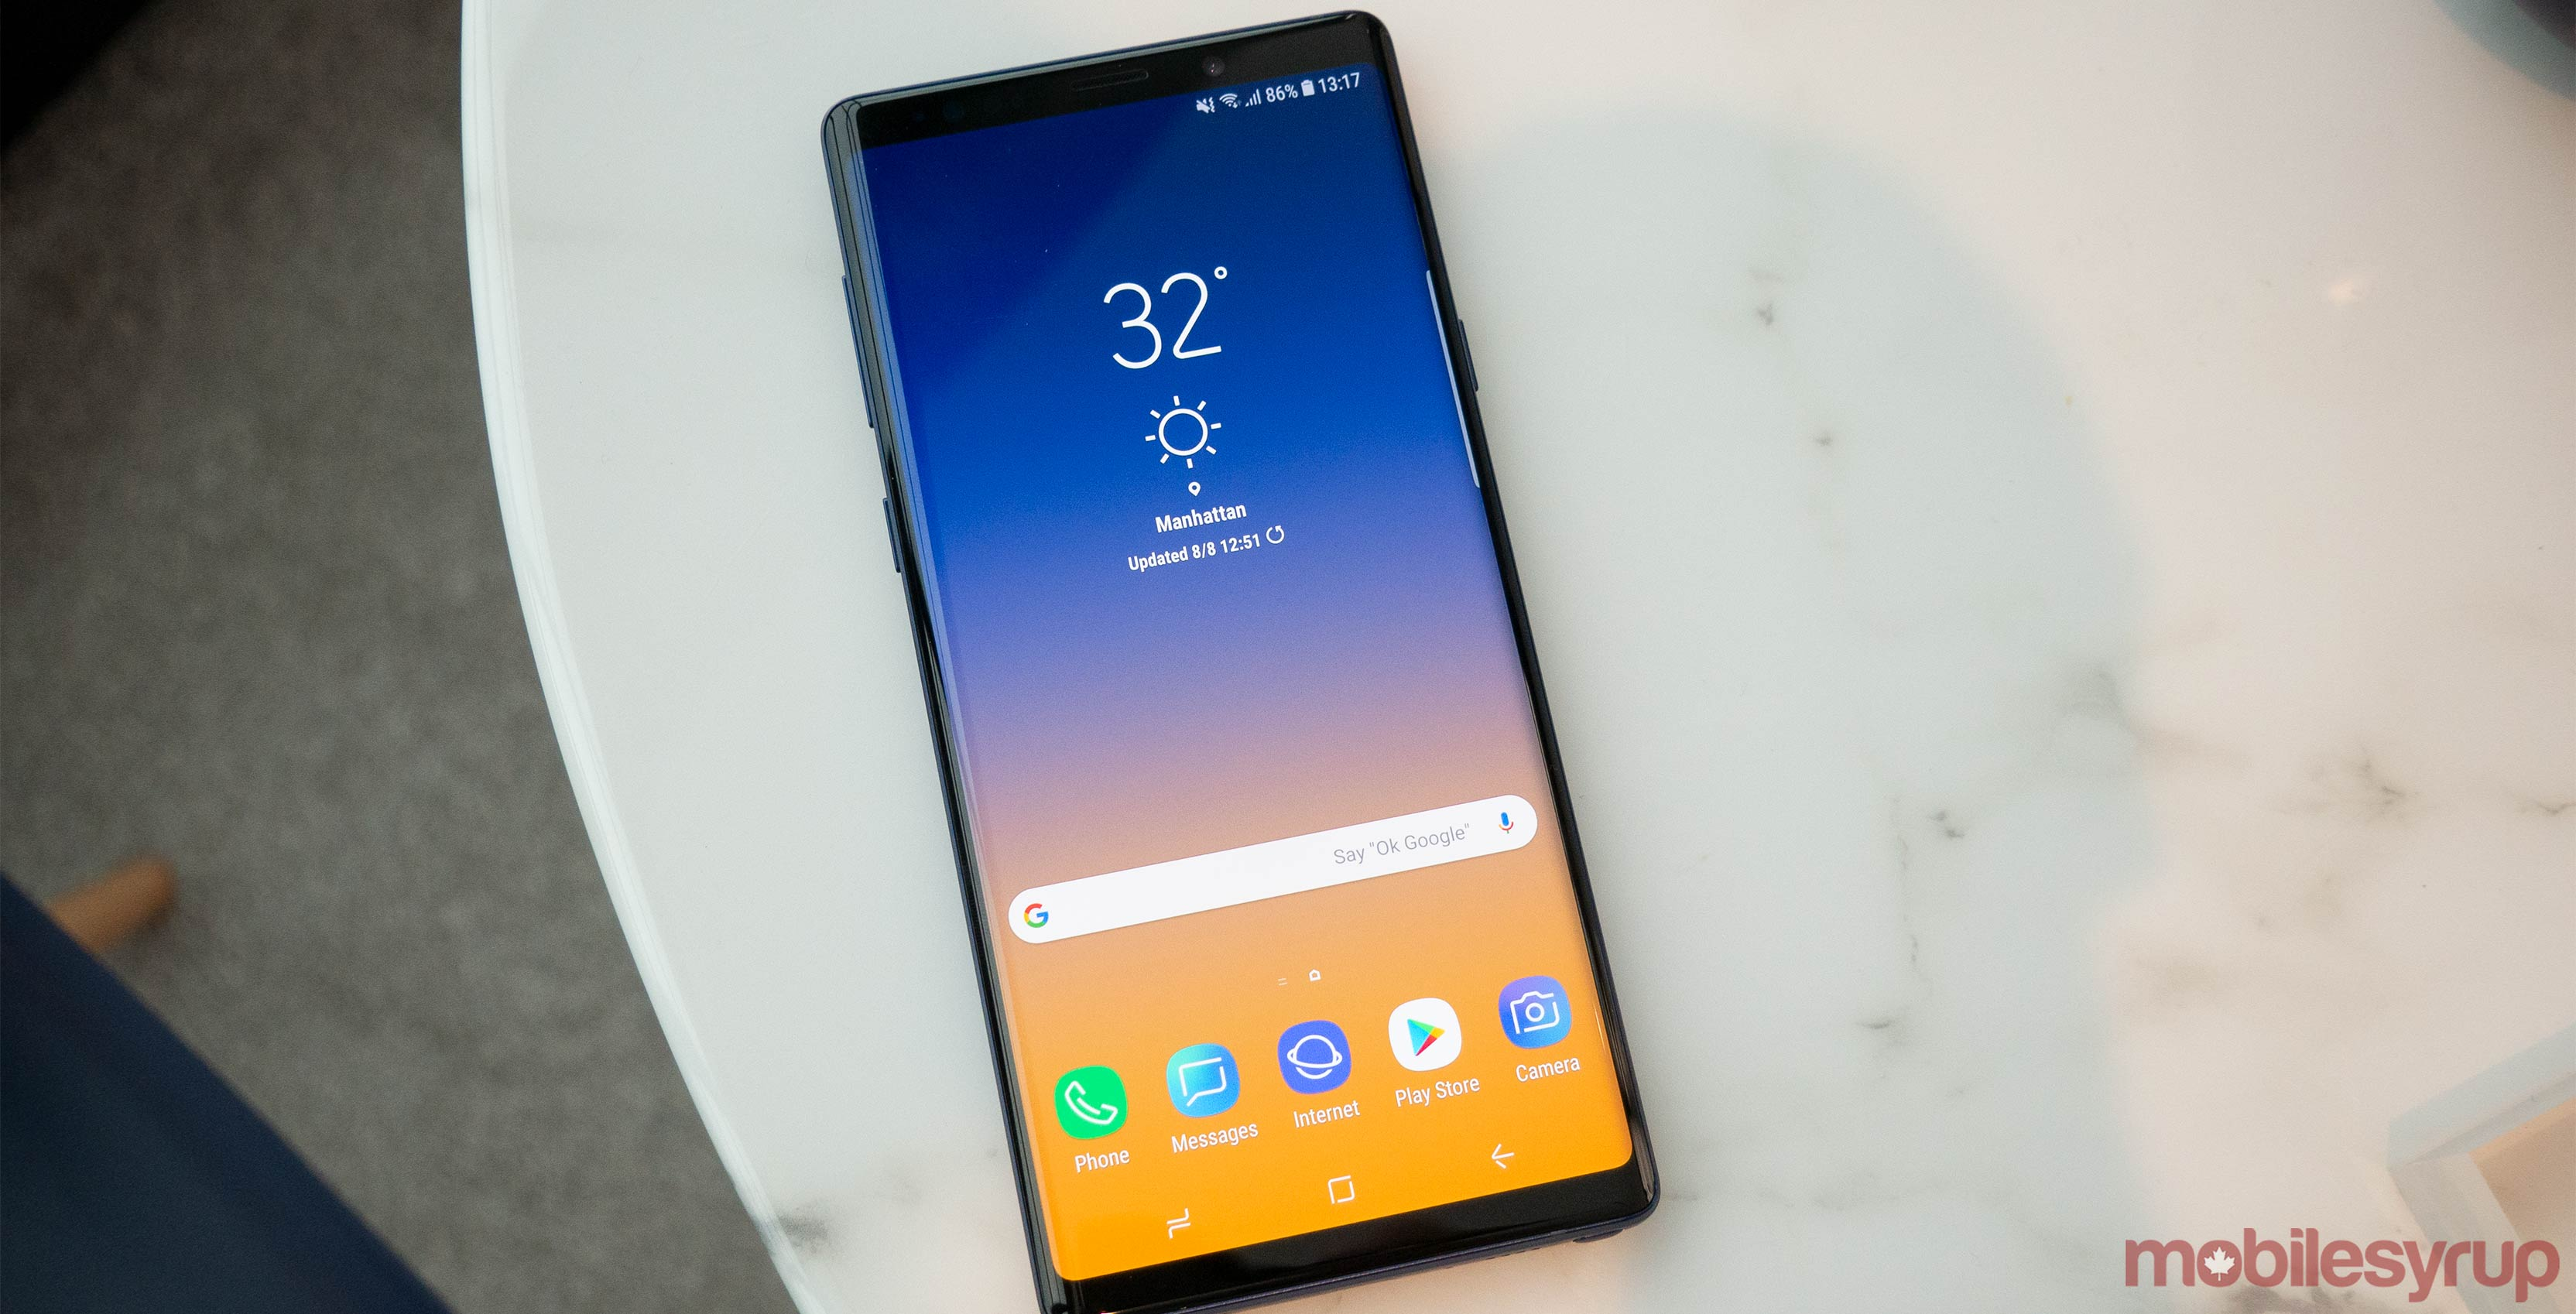 3x Galaxy S10 features just leaked: Camera, Battery, Screen